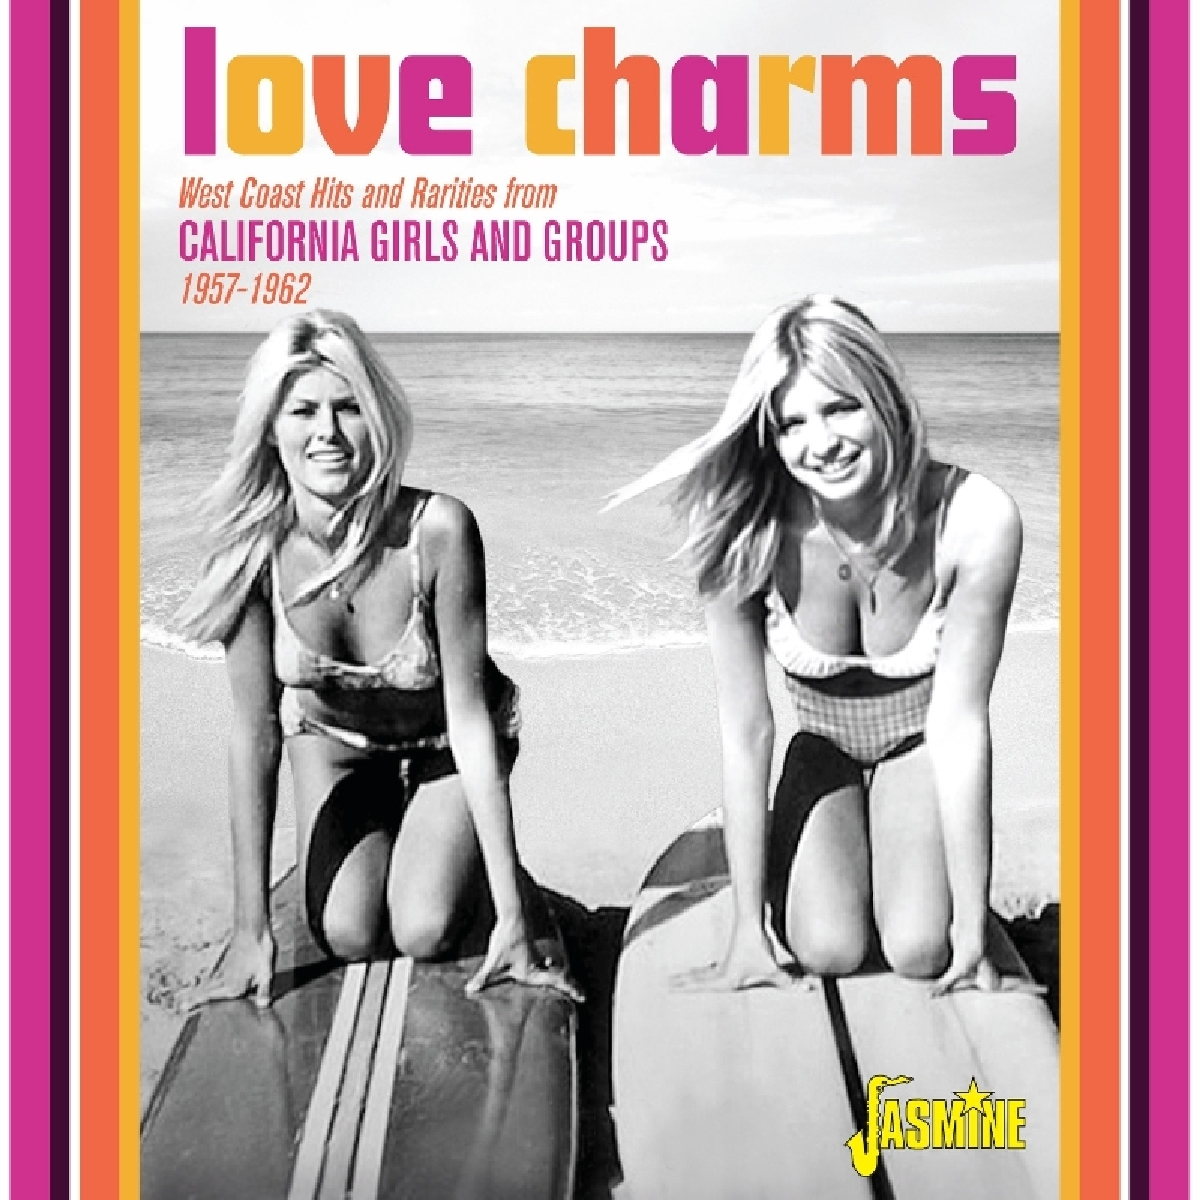 Jasmine-Records-Love-Charms-West-Coast-Hits-Rarities-From-California-Girls